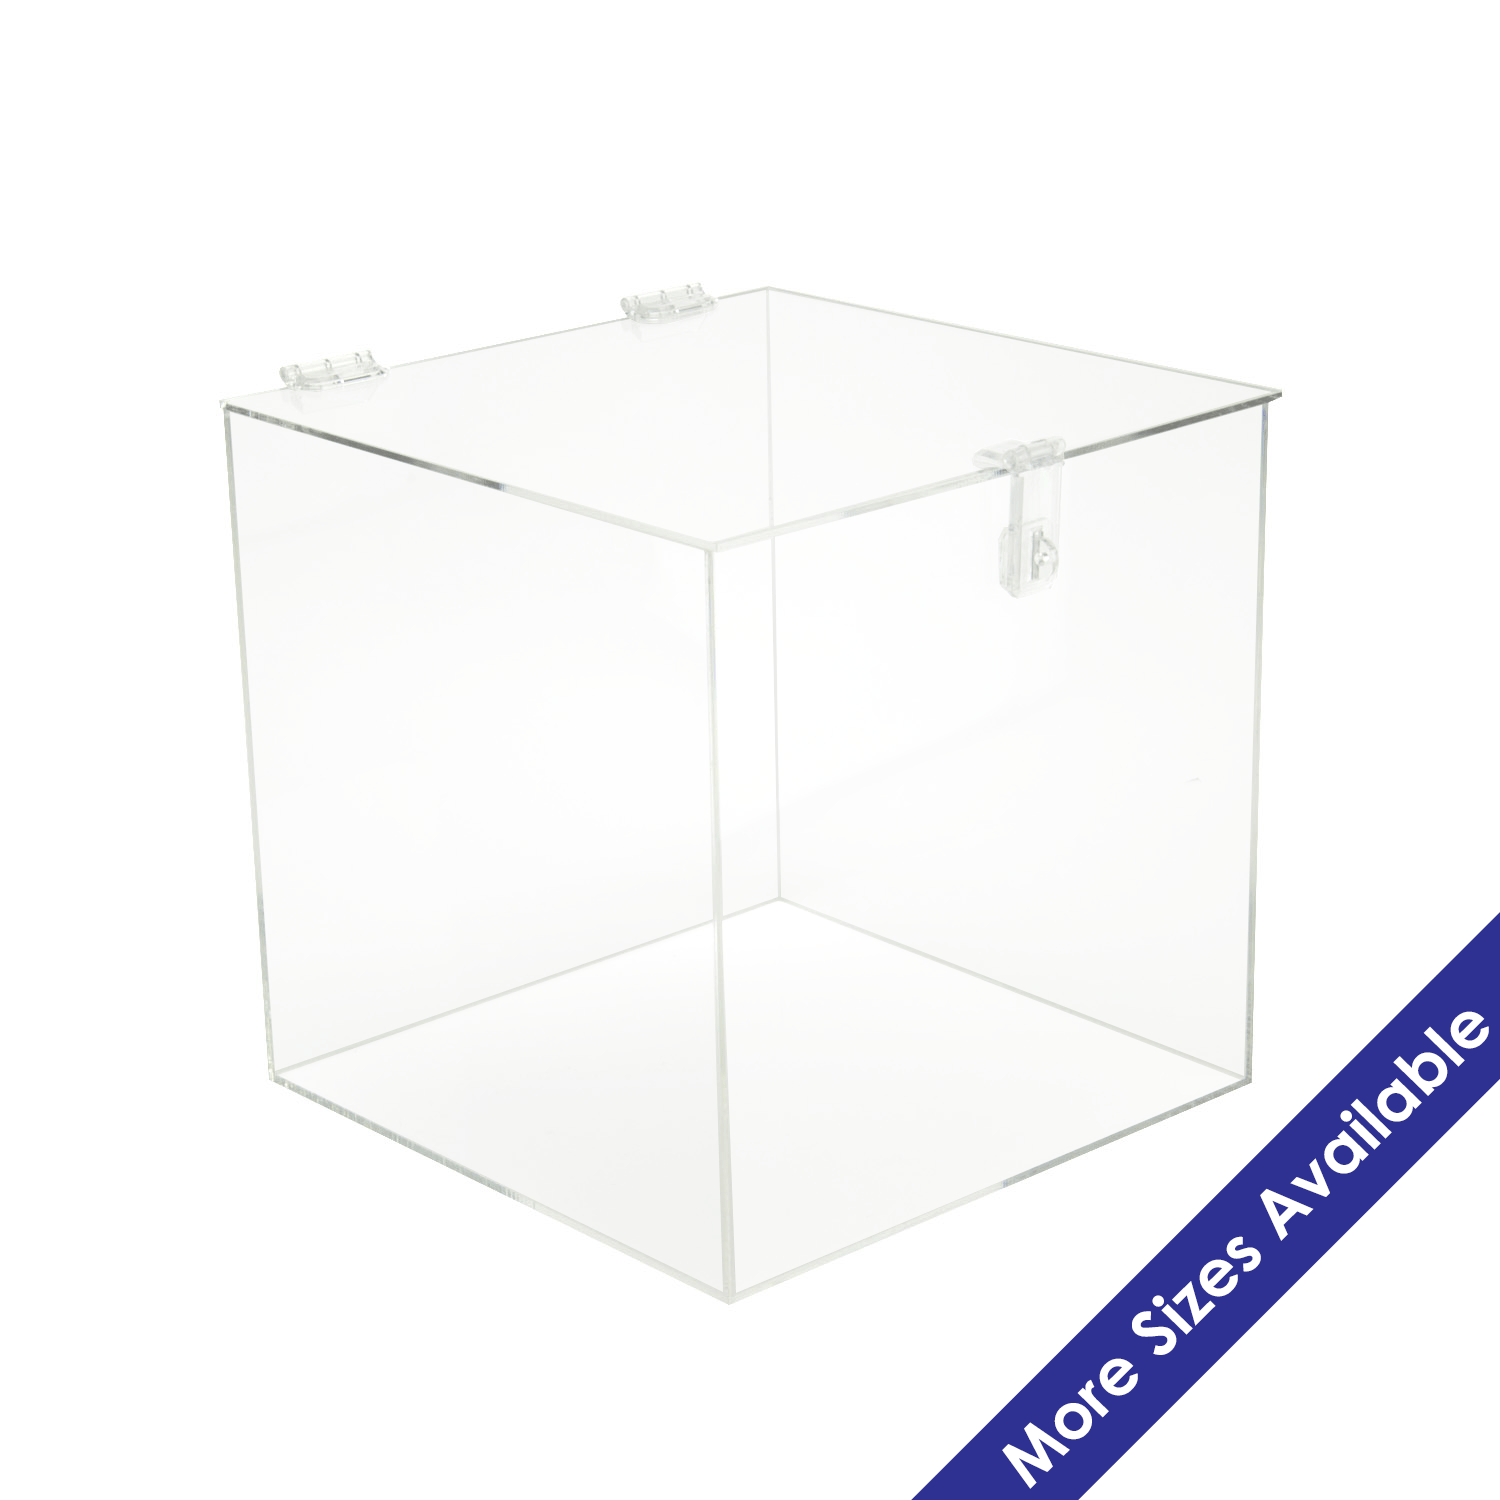 Acrylic 5 Sided Box W Hasp Lock Lid